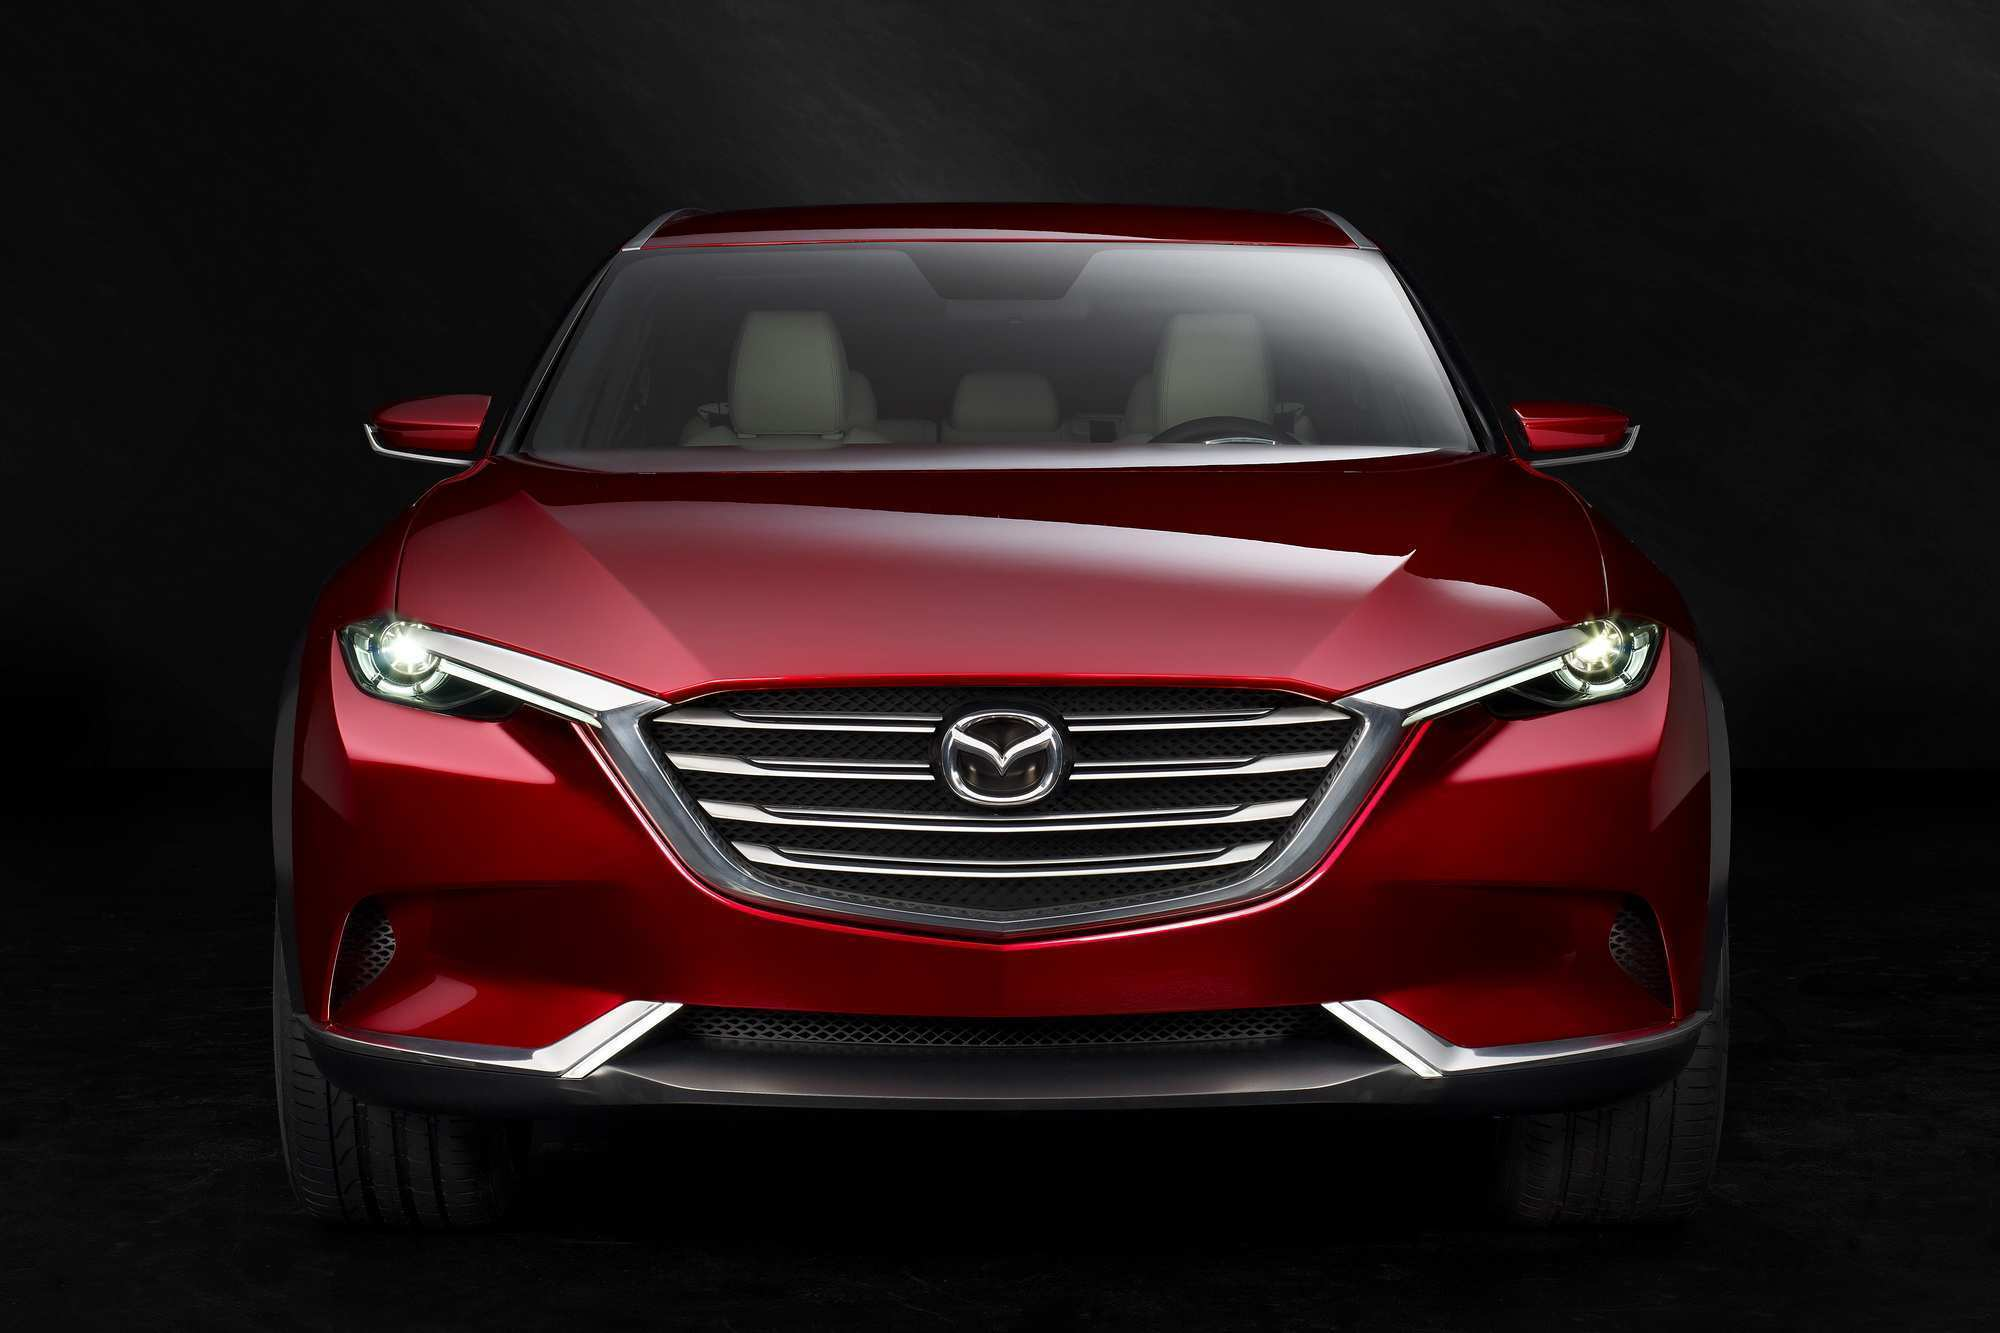 46 All New Mazda Elbil 2020 Release Date And Concept